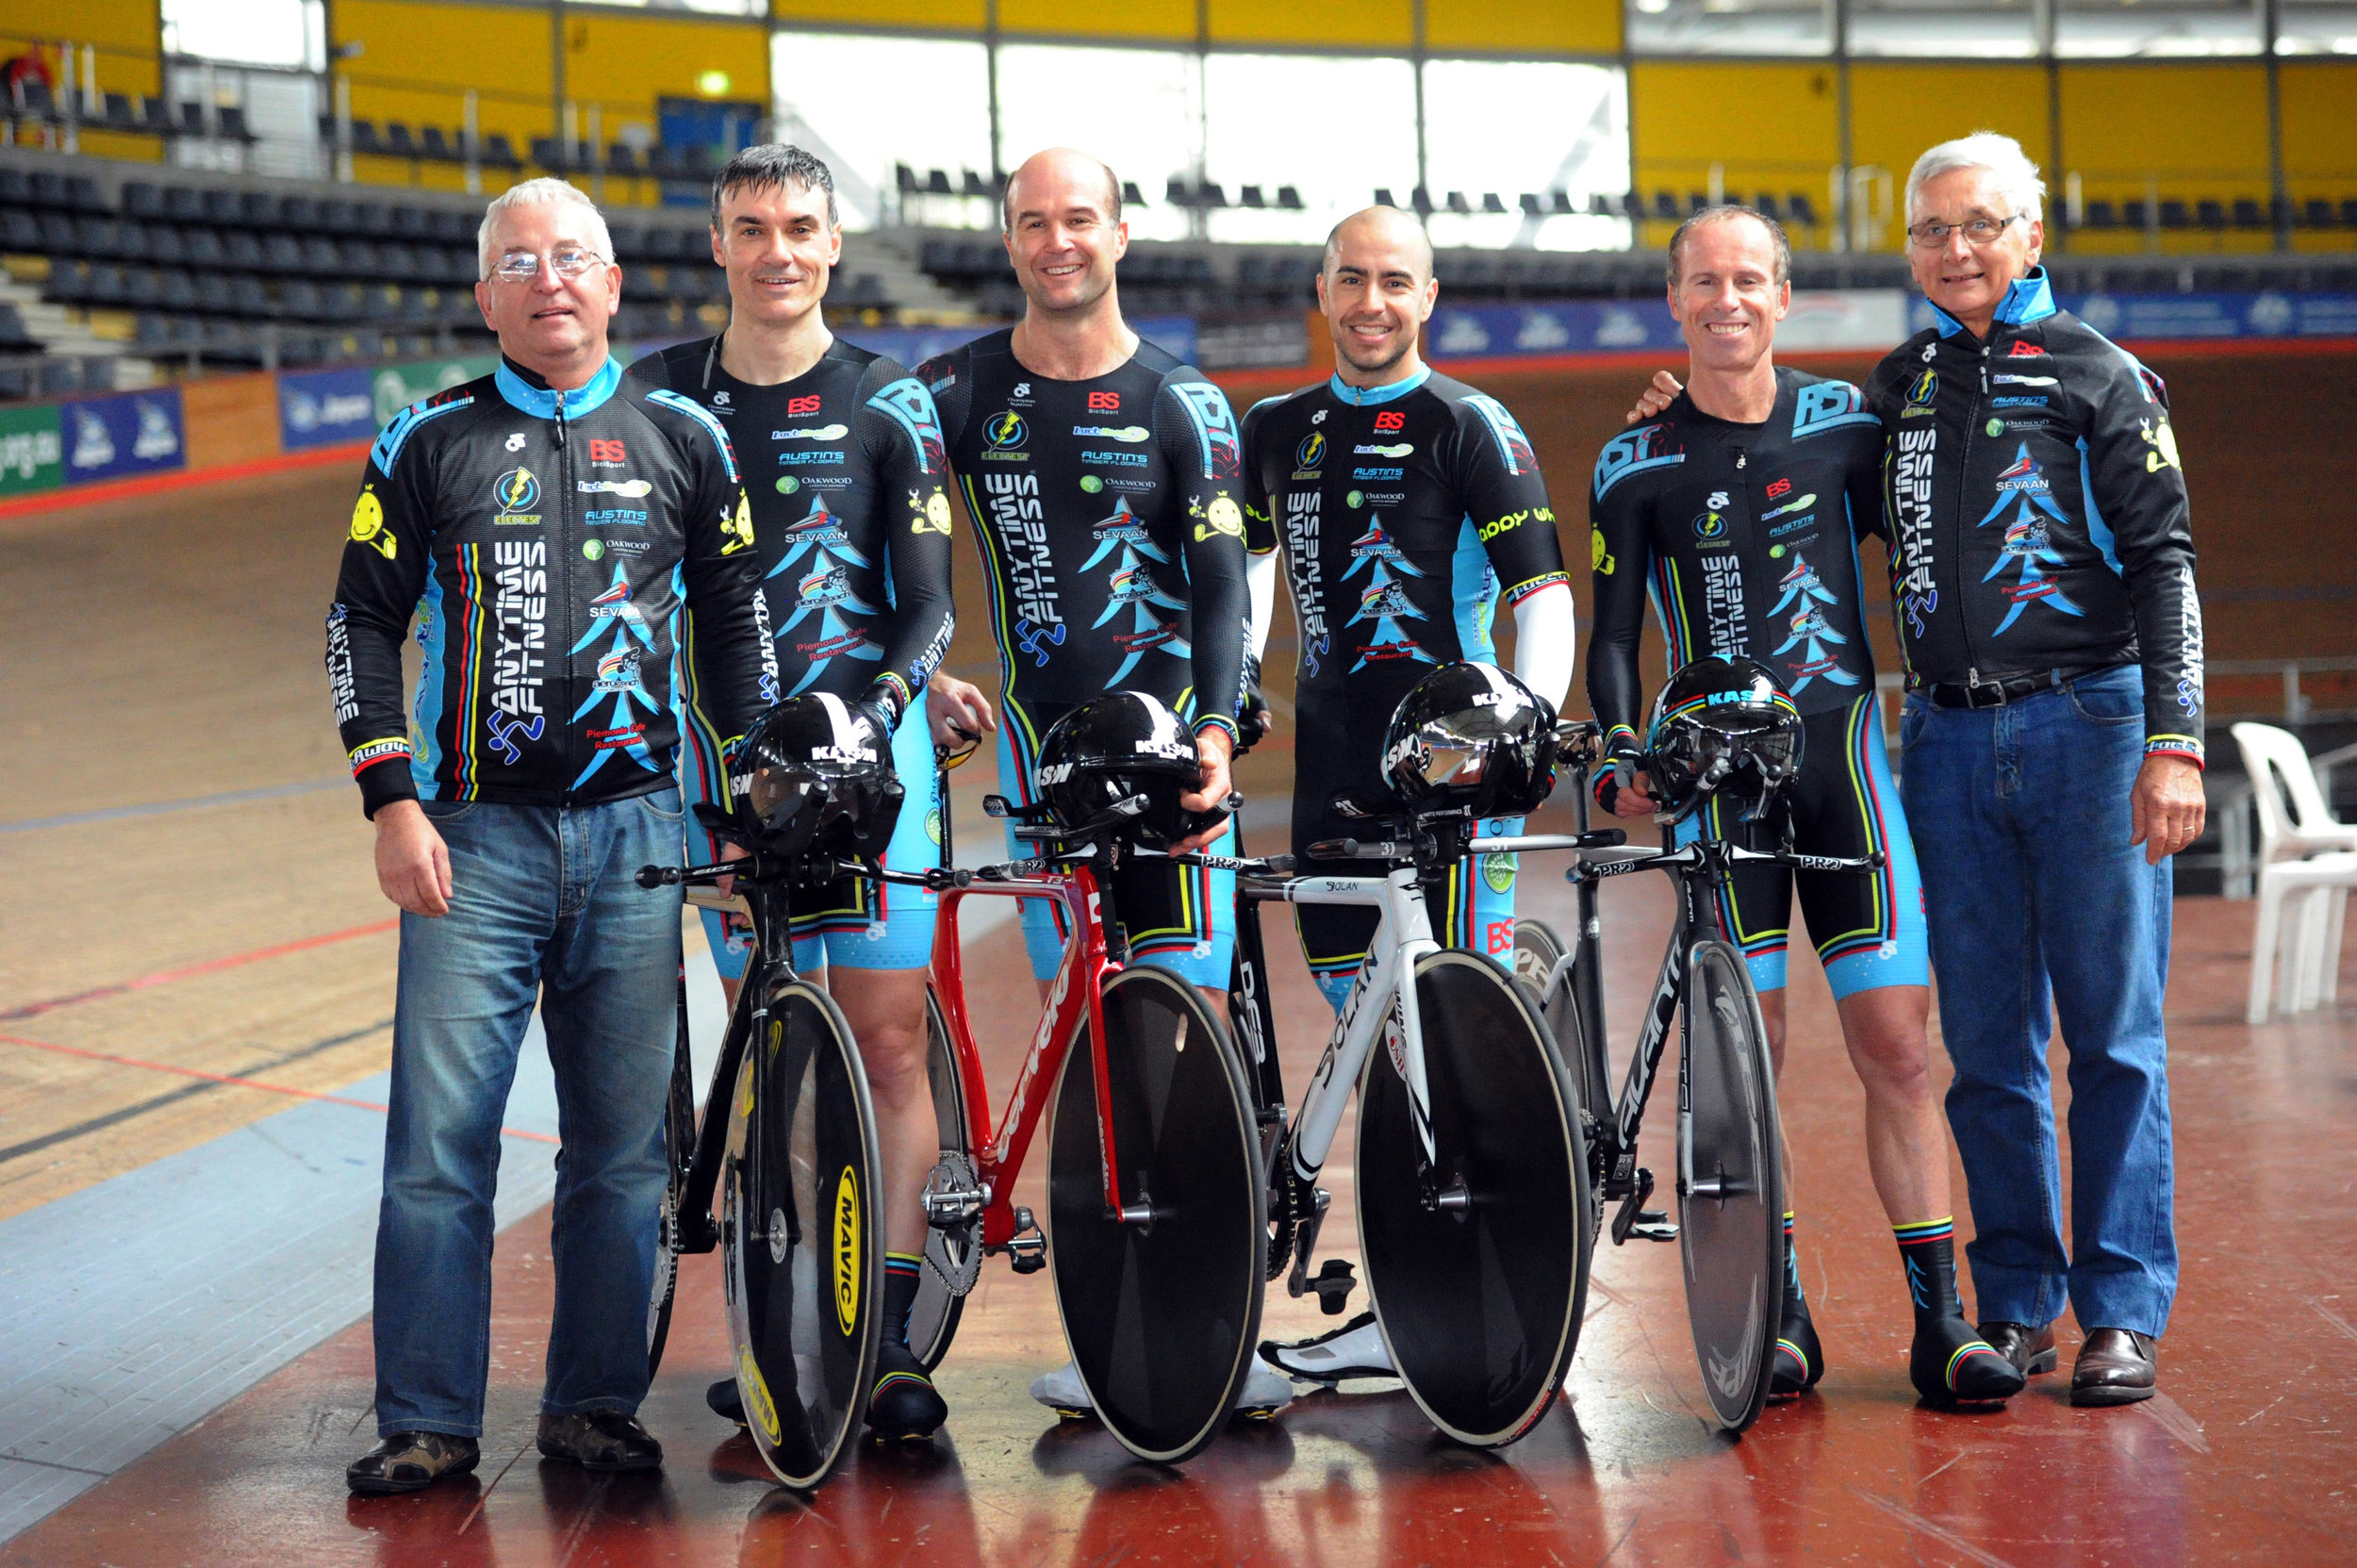 BiciSport Masters Teams Pursuit for Manchester World Championships October 14 - Mike O'Reilly (Assistant Coach), Matt Glanville, Rick McArdle, Alex Arancibia, Jayson Austin & John Crouchley (Coach)